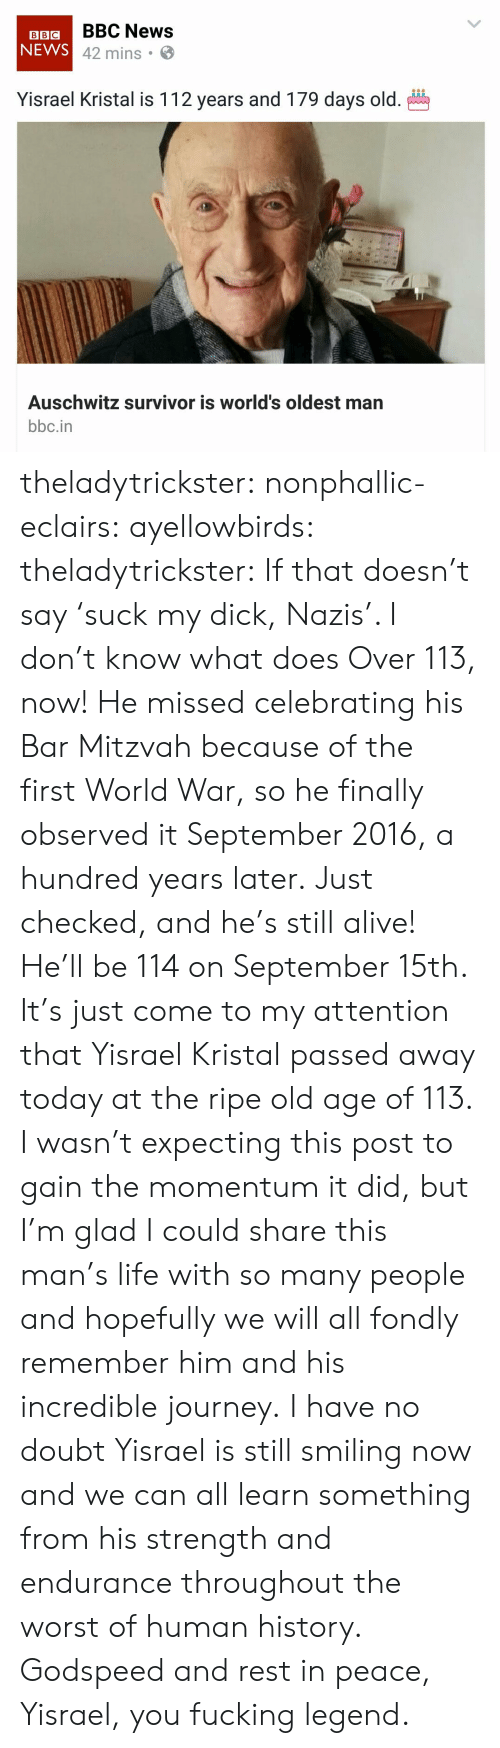 endurance: BBIGBBC News  NEWS  42 mins .  Yisrael Kristal is 112 years and 179 days old.  Auschwitz survivor is world's oldest man  bbc.in theladytrickster: nonphallic-eclairs:  ayellowbirds:  theladytrickster: If that doesn't say 'suck my dick, Nazis'. I don't know what does Over 113, now! He missed celebrating his Bar Mitzvah because of the first World War, so he finally observed it September 2016, a hundred years later.  Just checked, and he's still alive! He'll be 114 on September 15th.  It's just come to my attention that Yisrael Kristal passed away today at the ripe old age of 113. I wasn't expecting this post to gain the momentum it did, but I'm glad I could share this man's life with so many people and hopefully we will all fondly remember him and his incredible journey. I have no doubt Yisrael is still smiling now and we can all learn something from his strength and endurance throughout the worst of human history. Godspeed and rest in peace, Yisrael, you fucking legend.